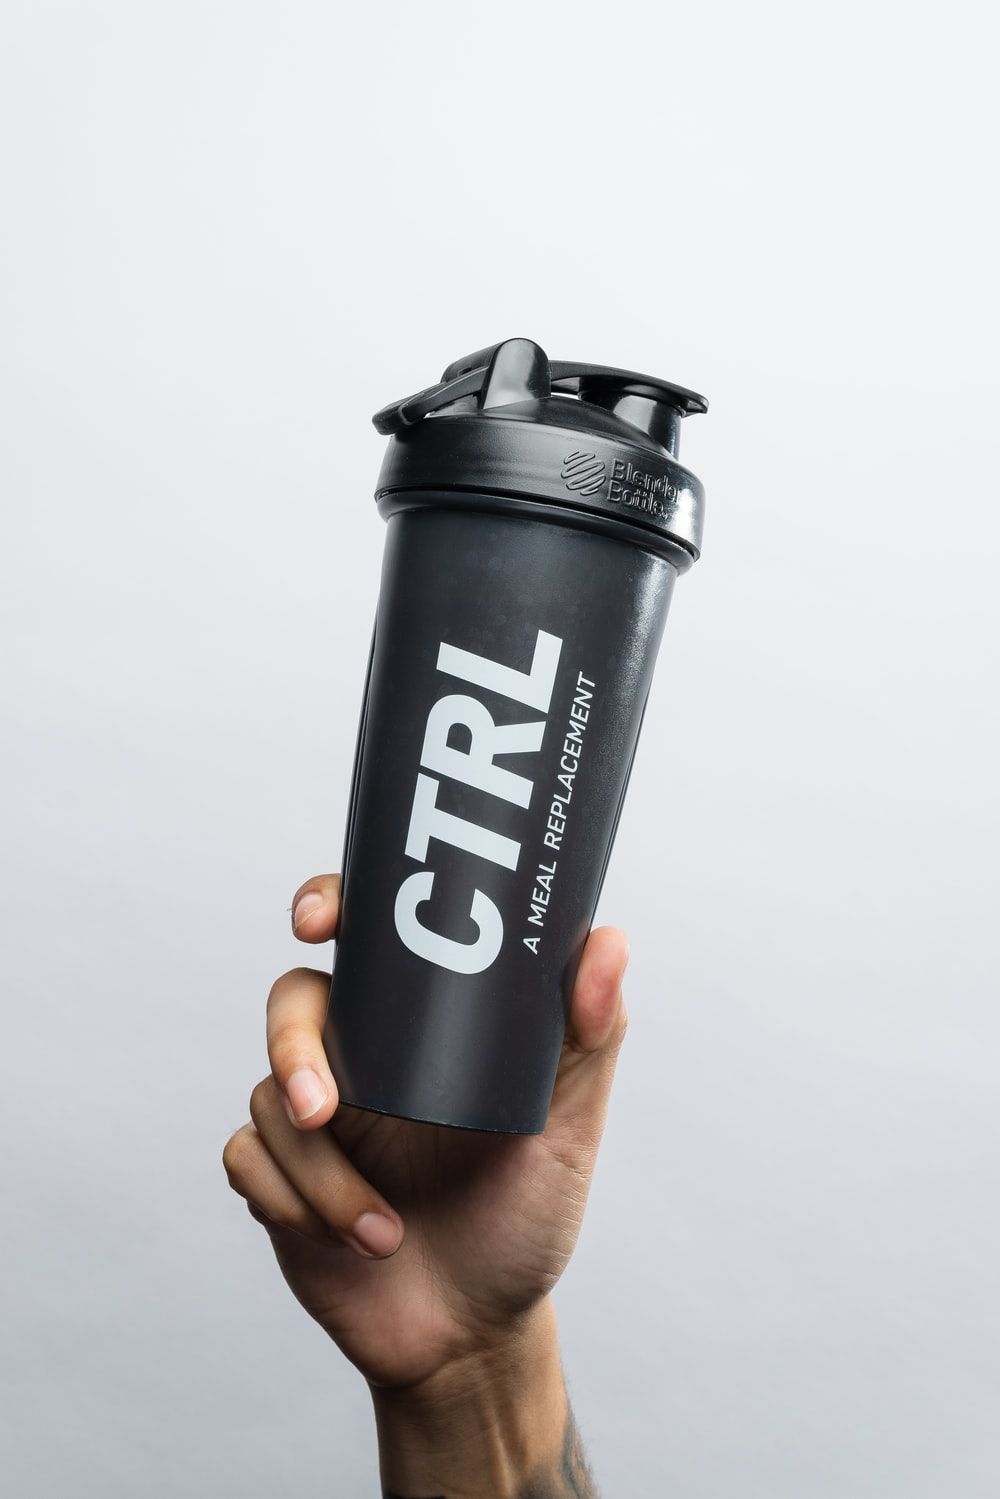 person holding black and white adidas tumbler